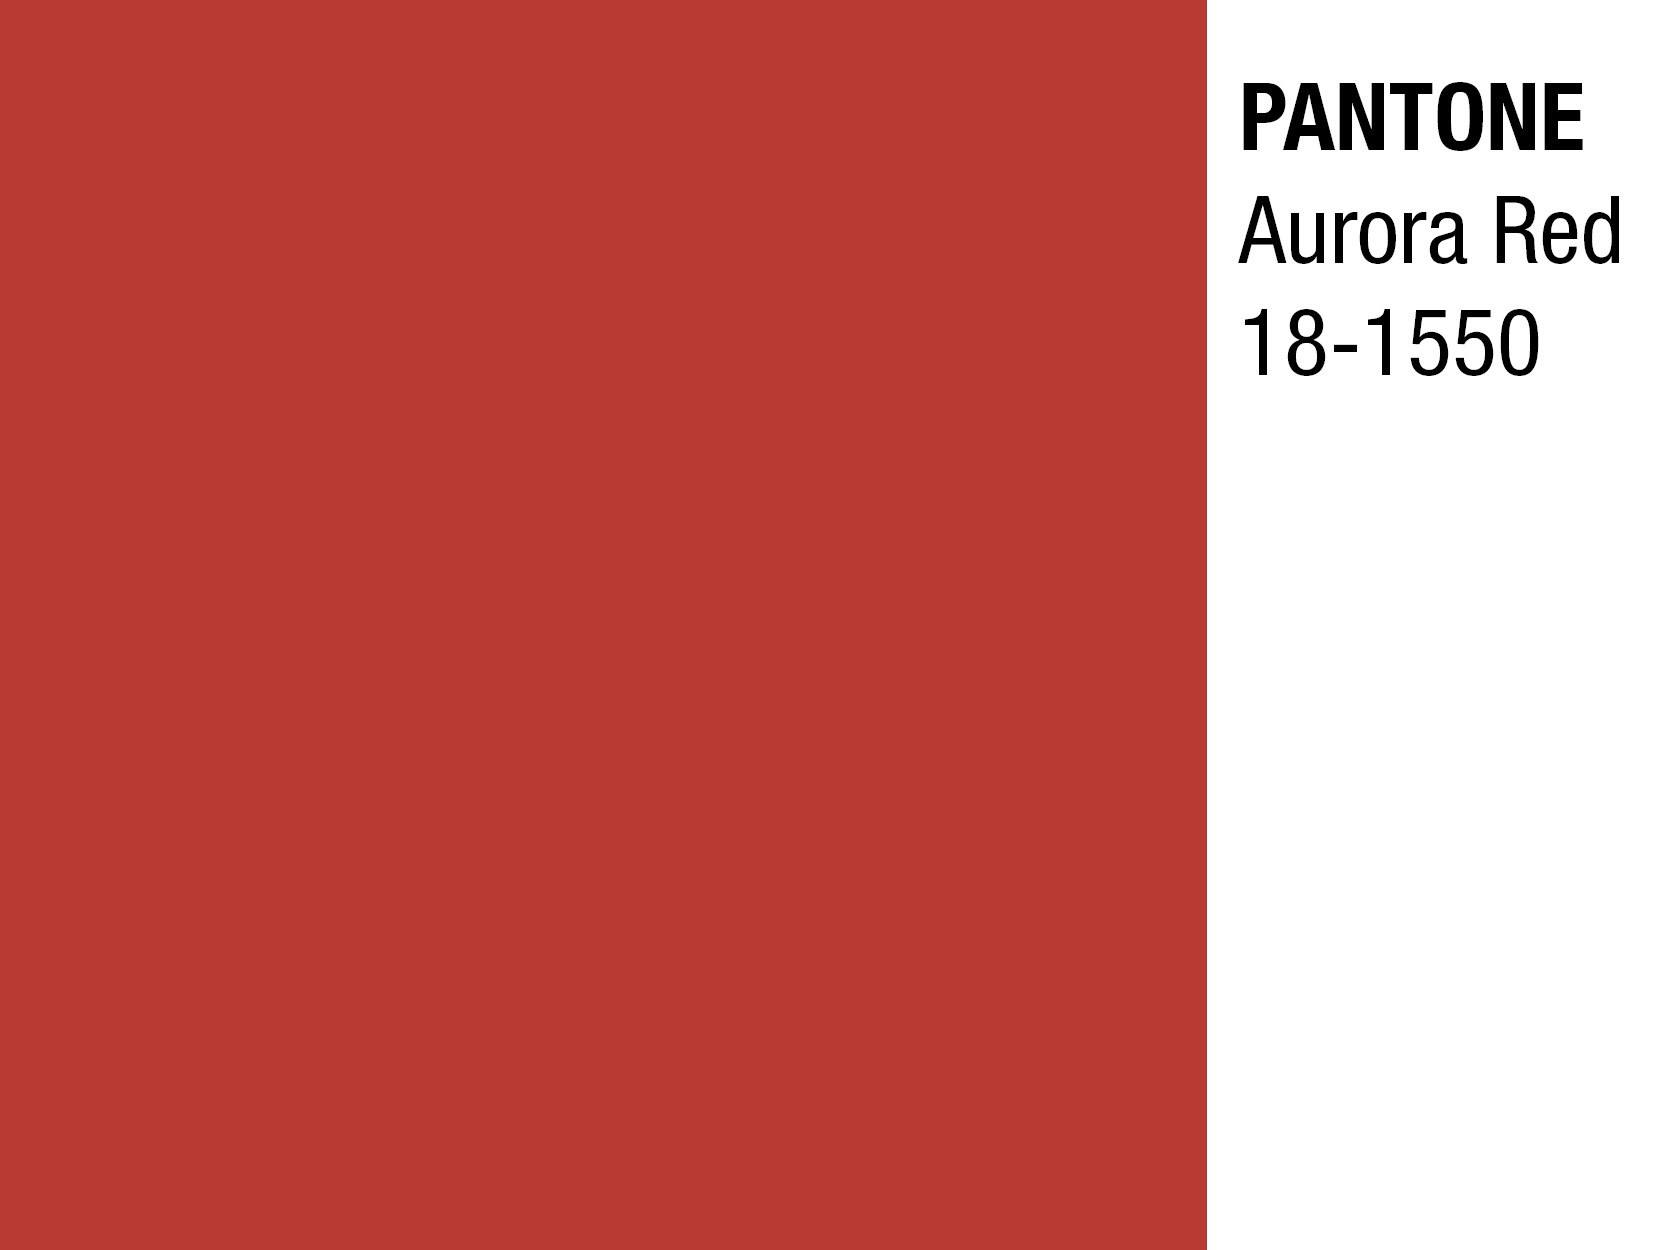 pantone aurora red - photo #40